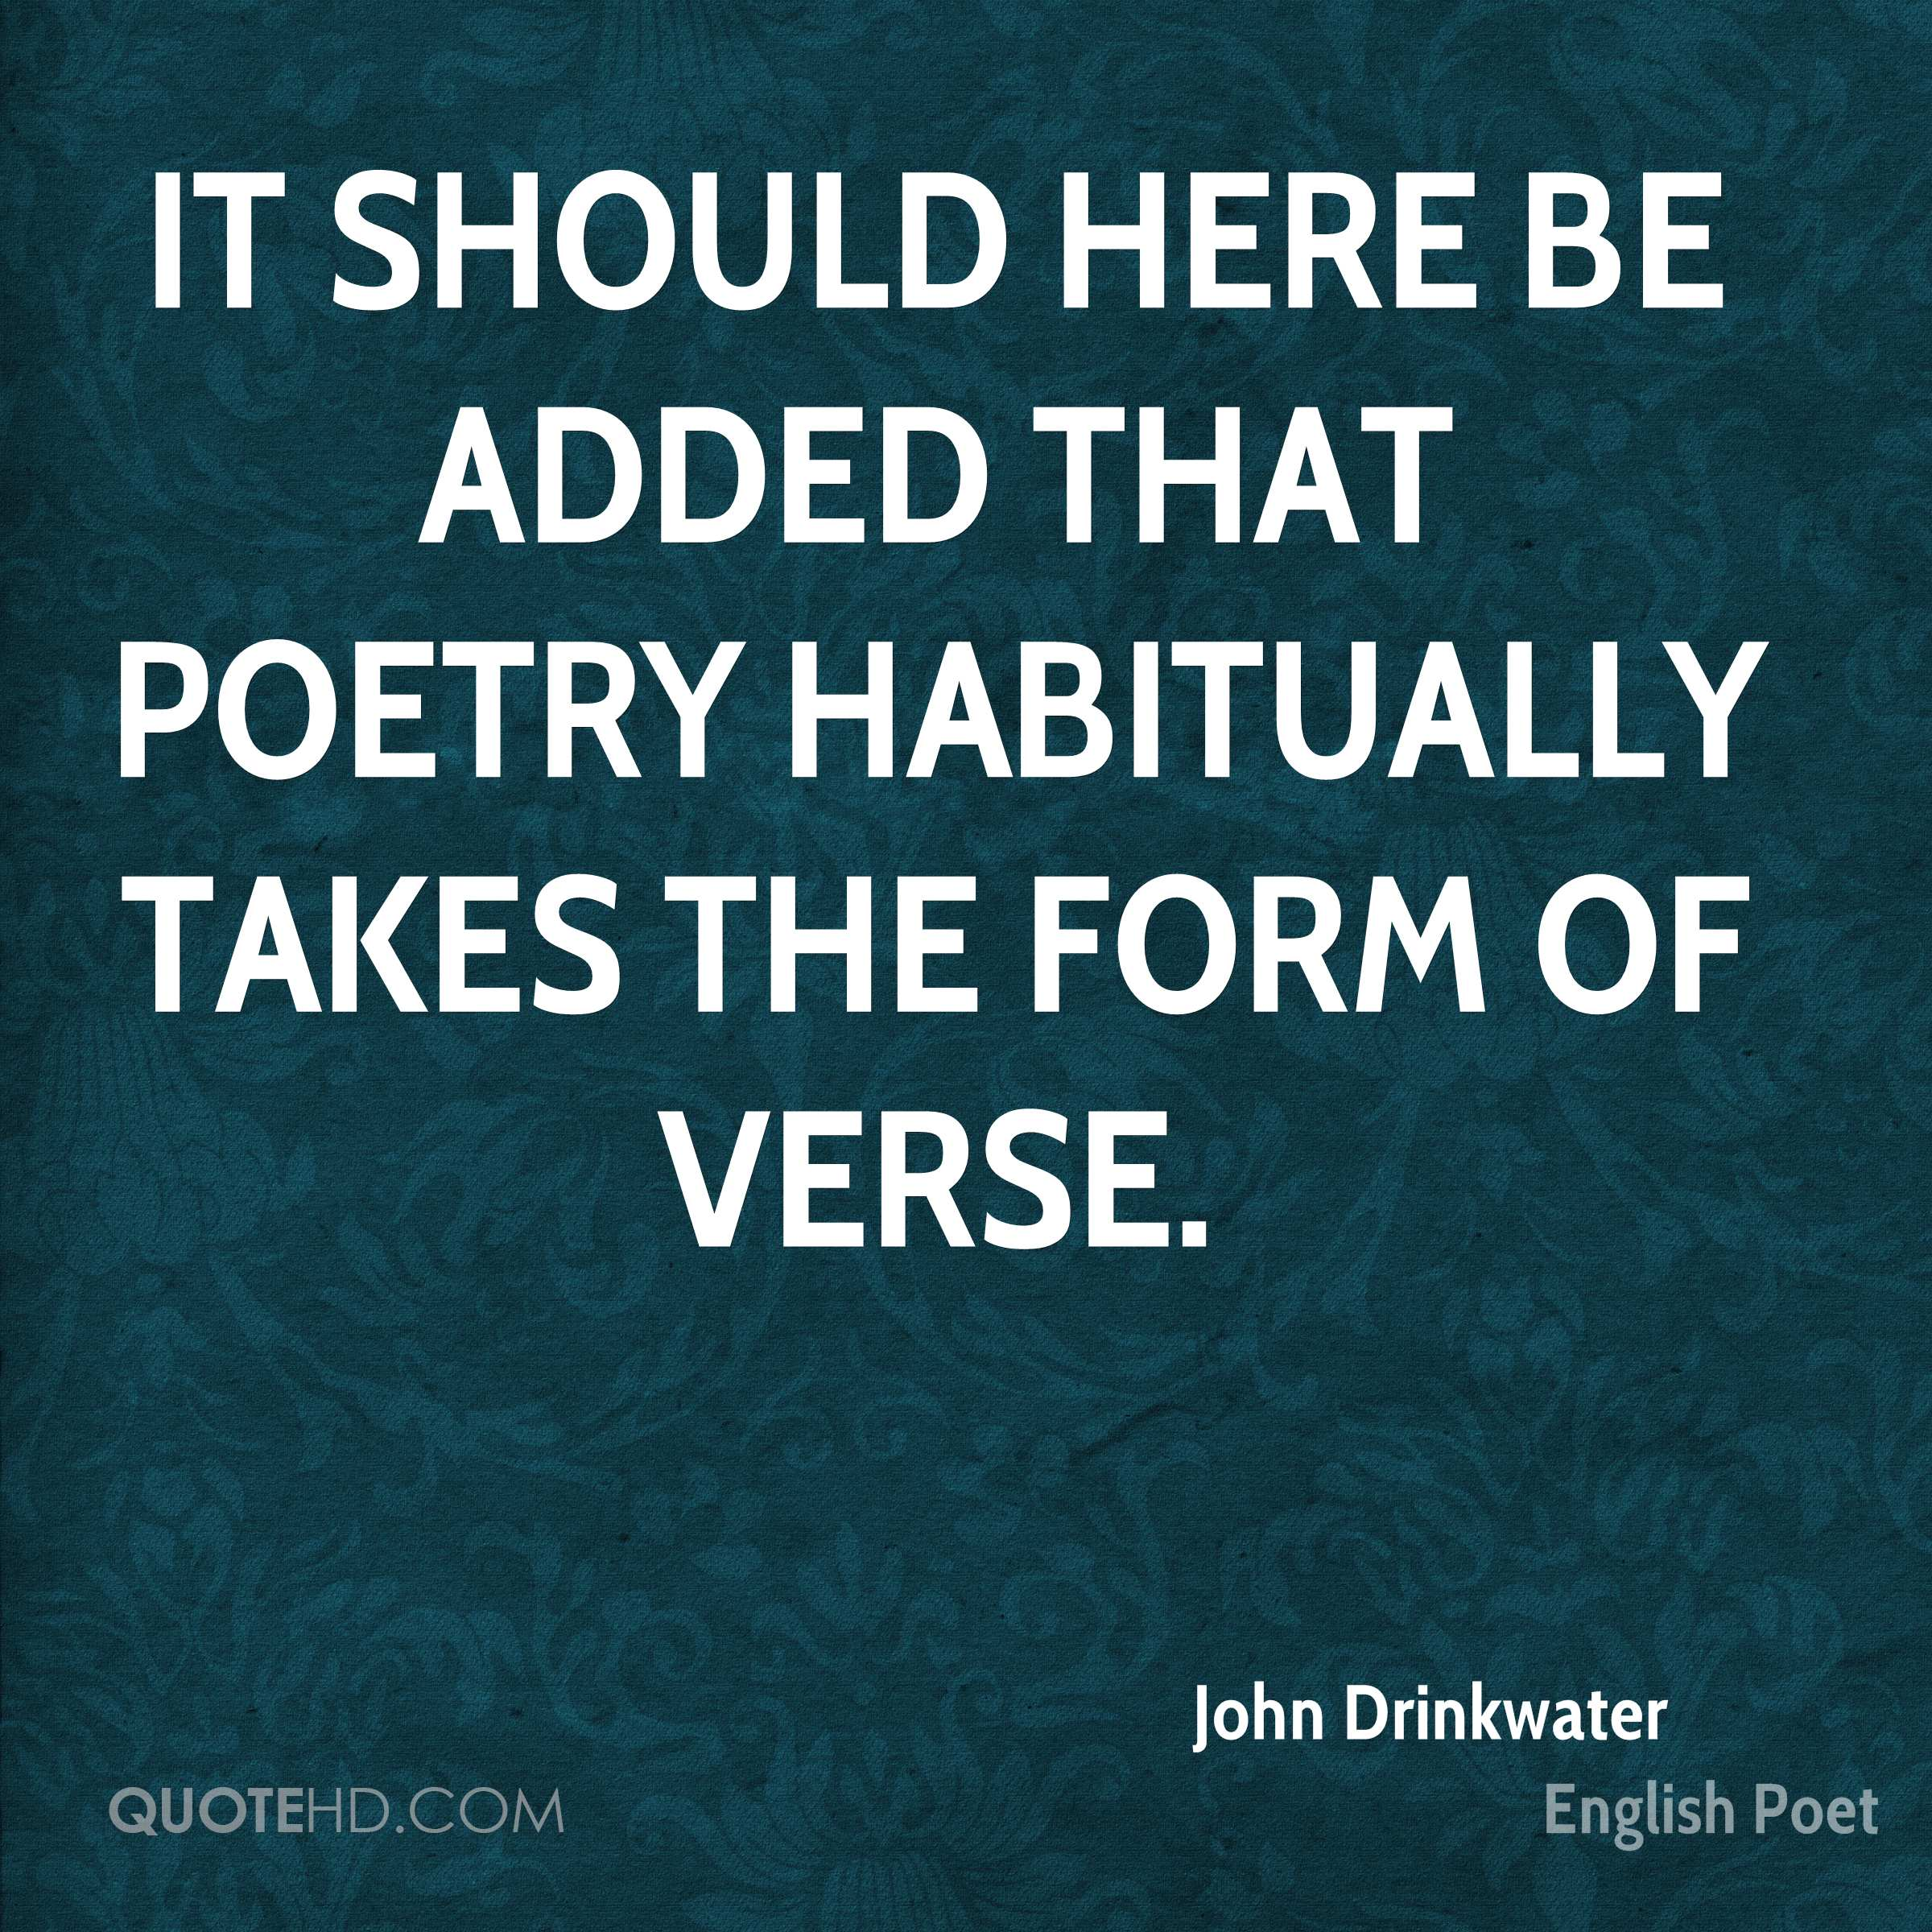 It should here be added that poetry habitually takes the form of verse.